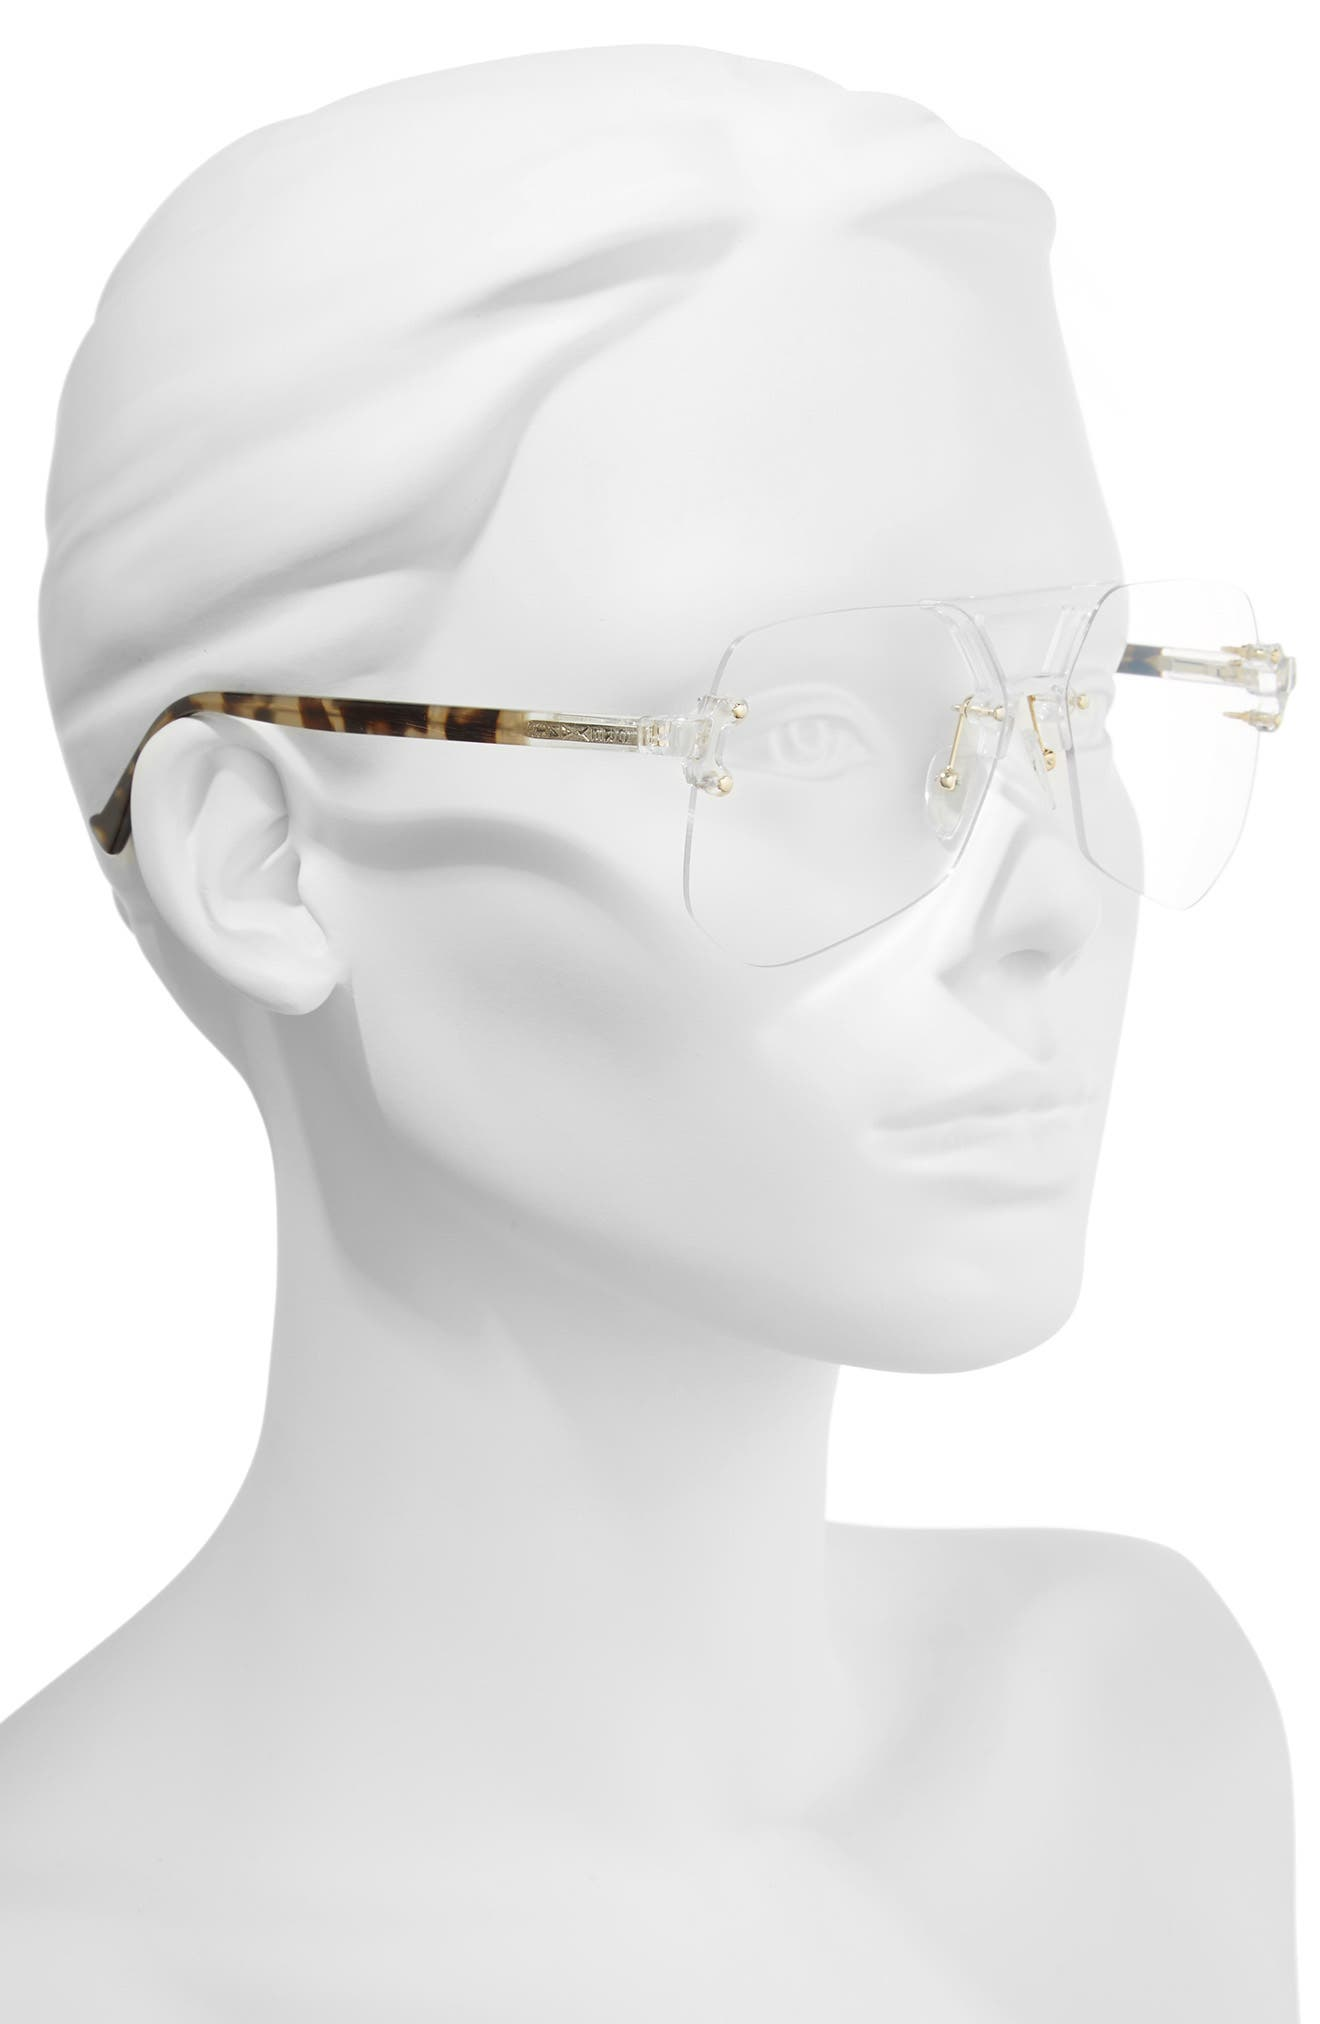 Yesway 60mm Optical Glasses,                             Alternate thumbnail 2, color,